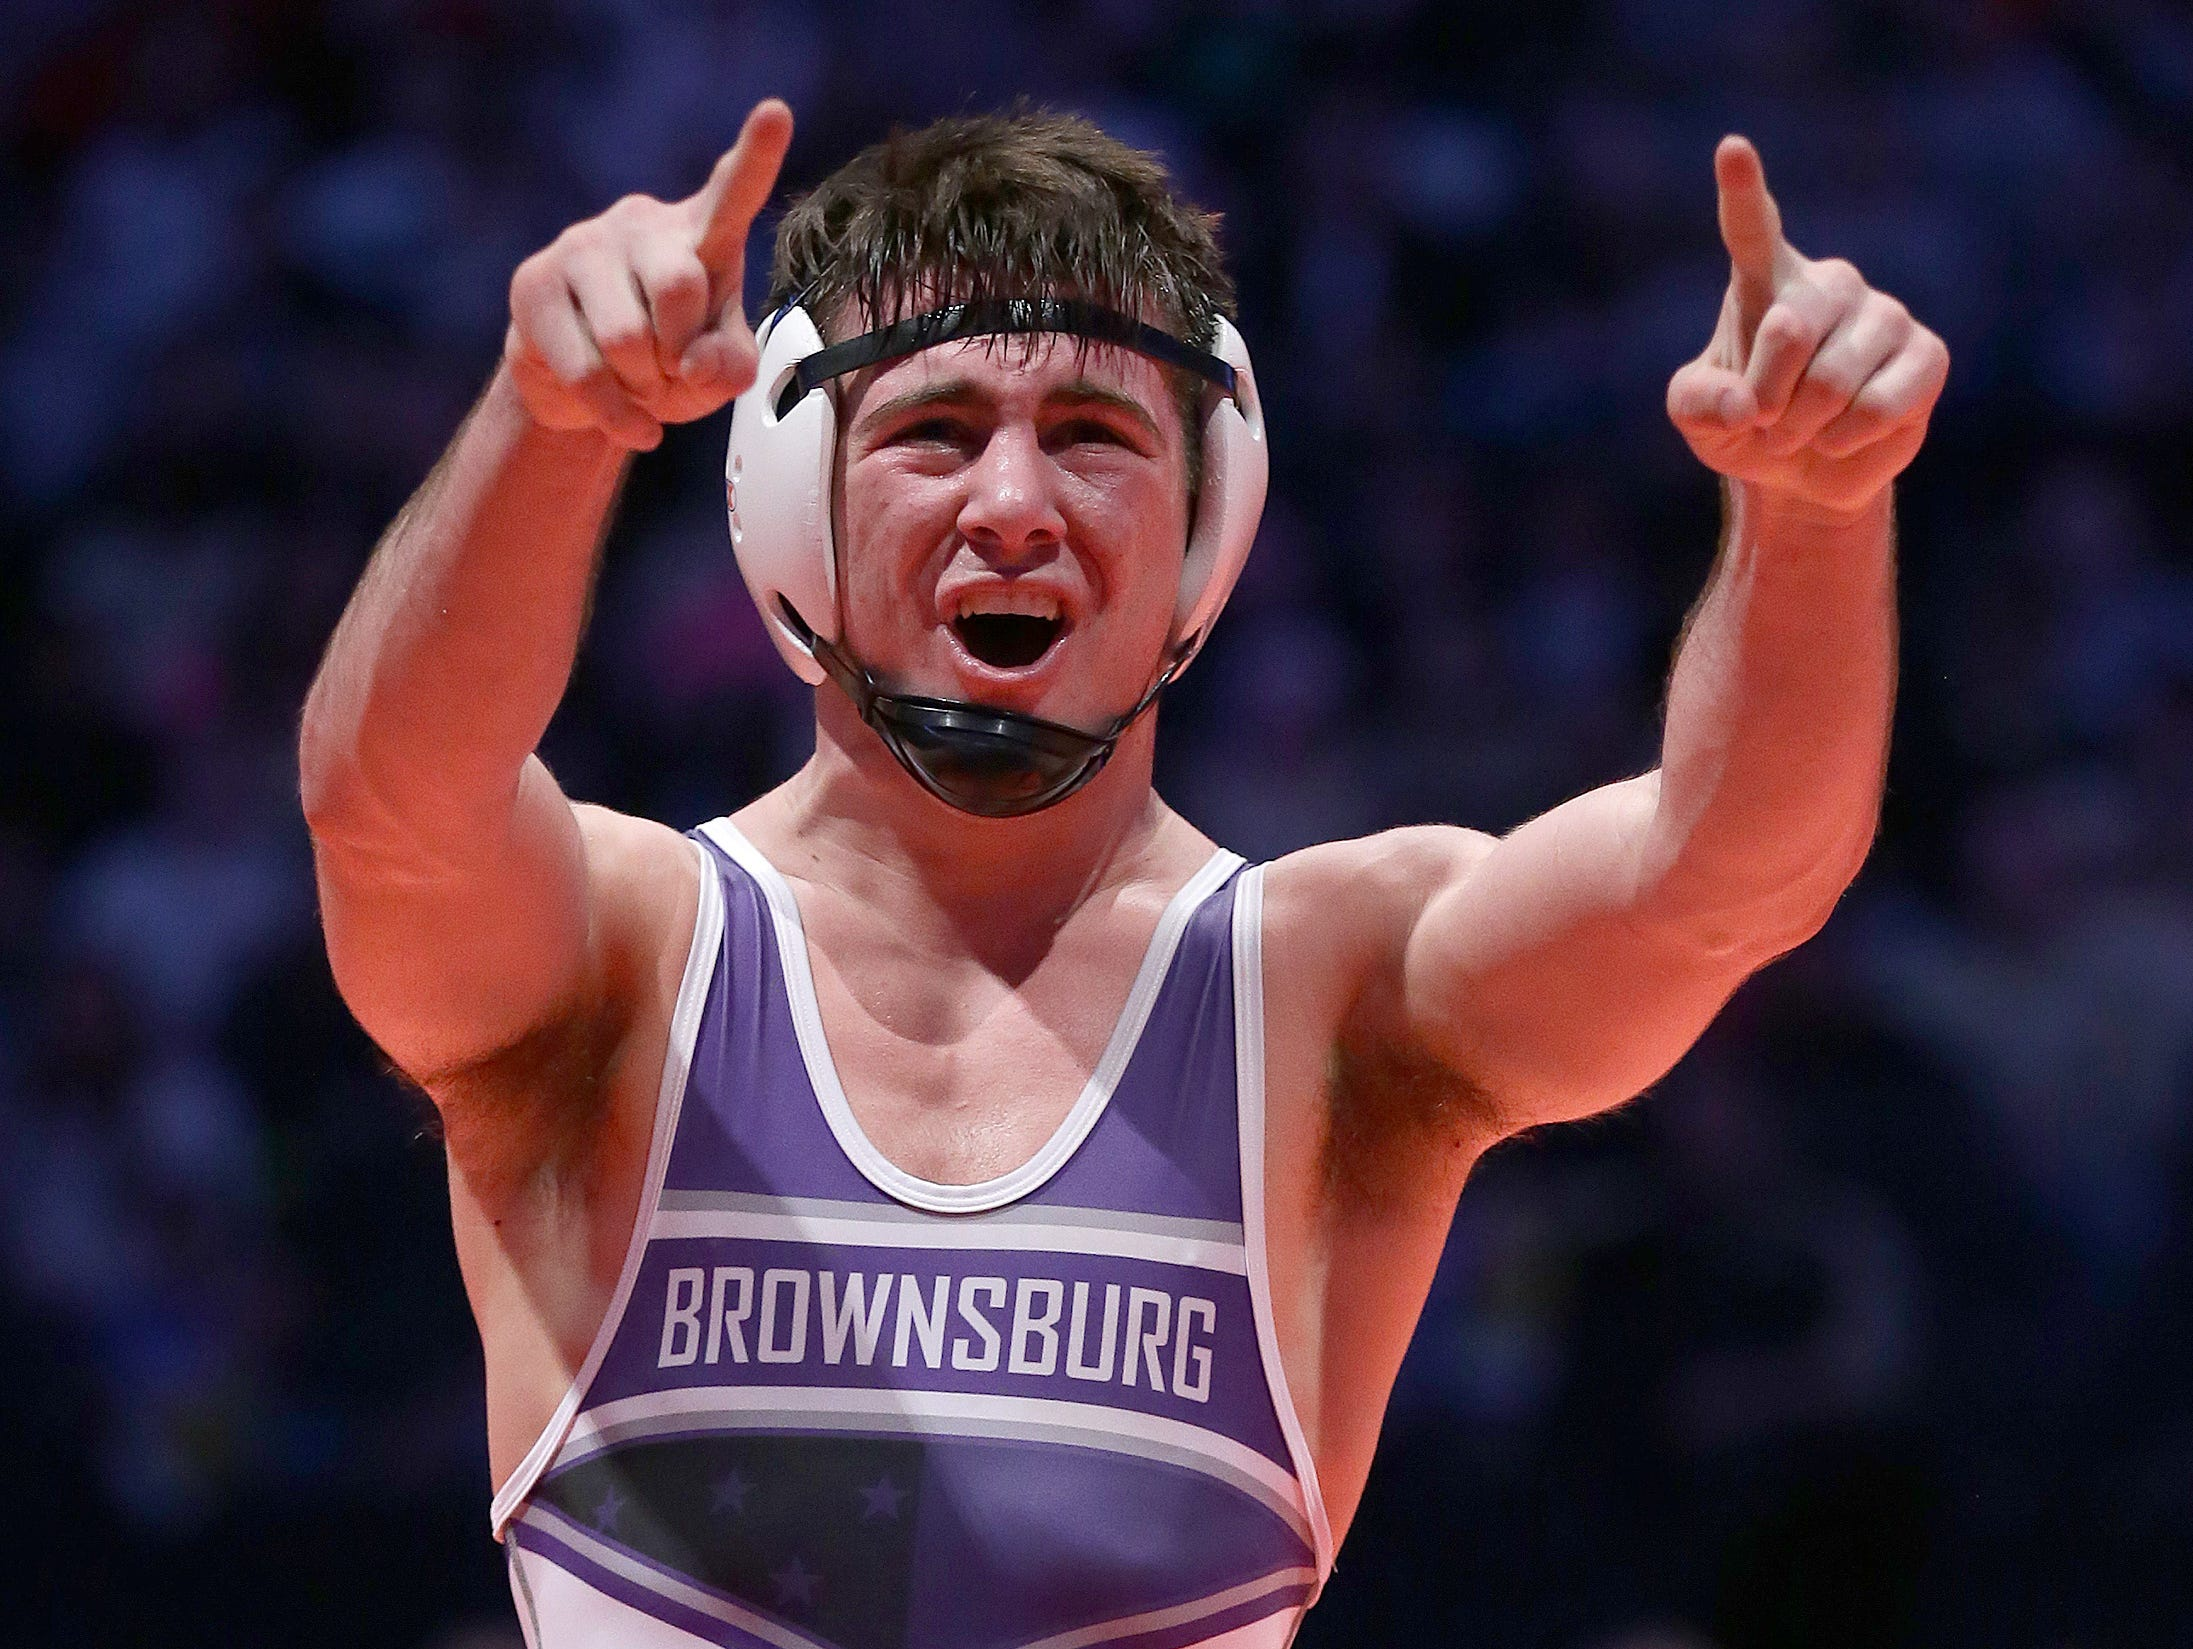 Brownburg's Brayton Lee celebrate his win over Munster's Jason Crary in the 145-pound championship match at the IHSAA Wrestling State Finals Saturday, February 18, 2017, evening at Bankers Life Fieldhouse.